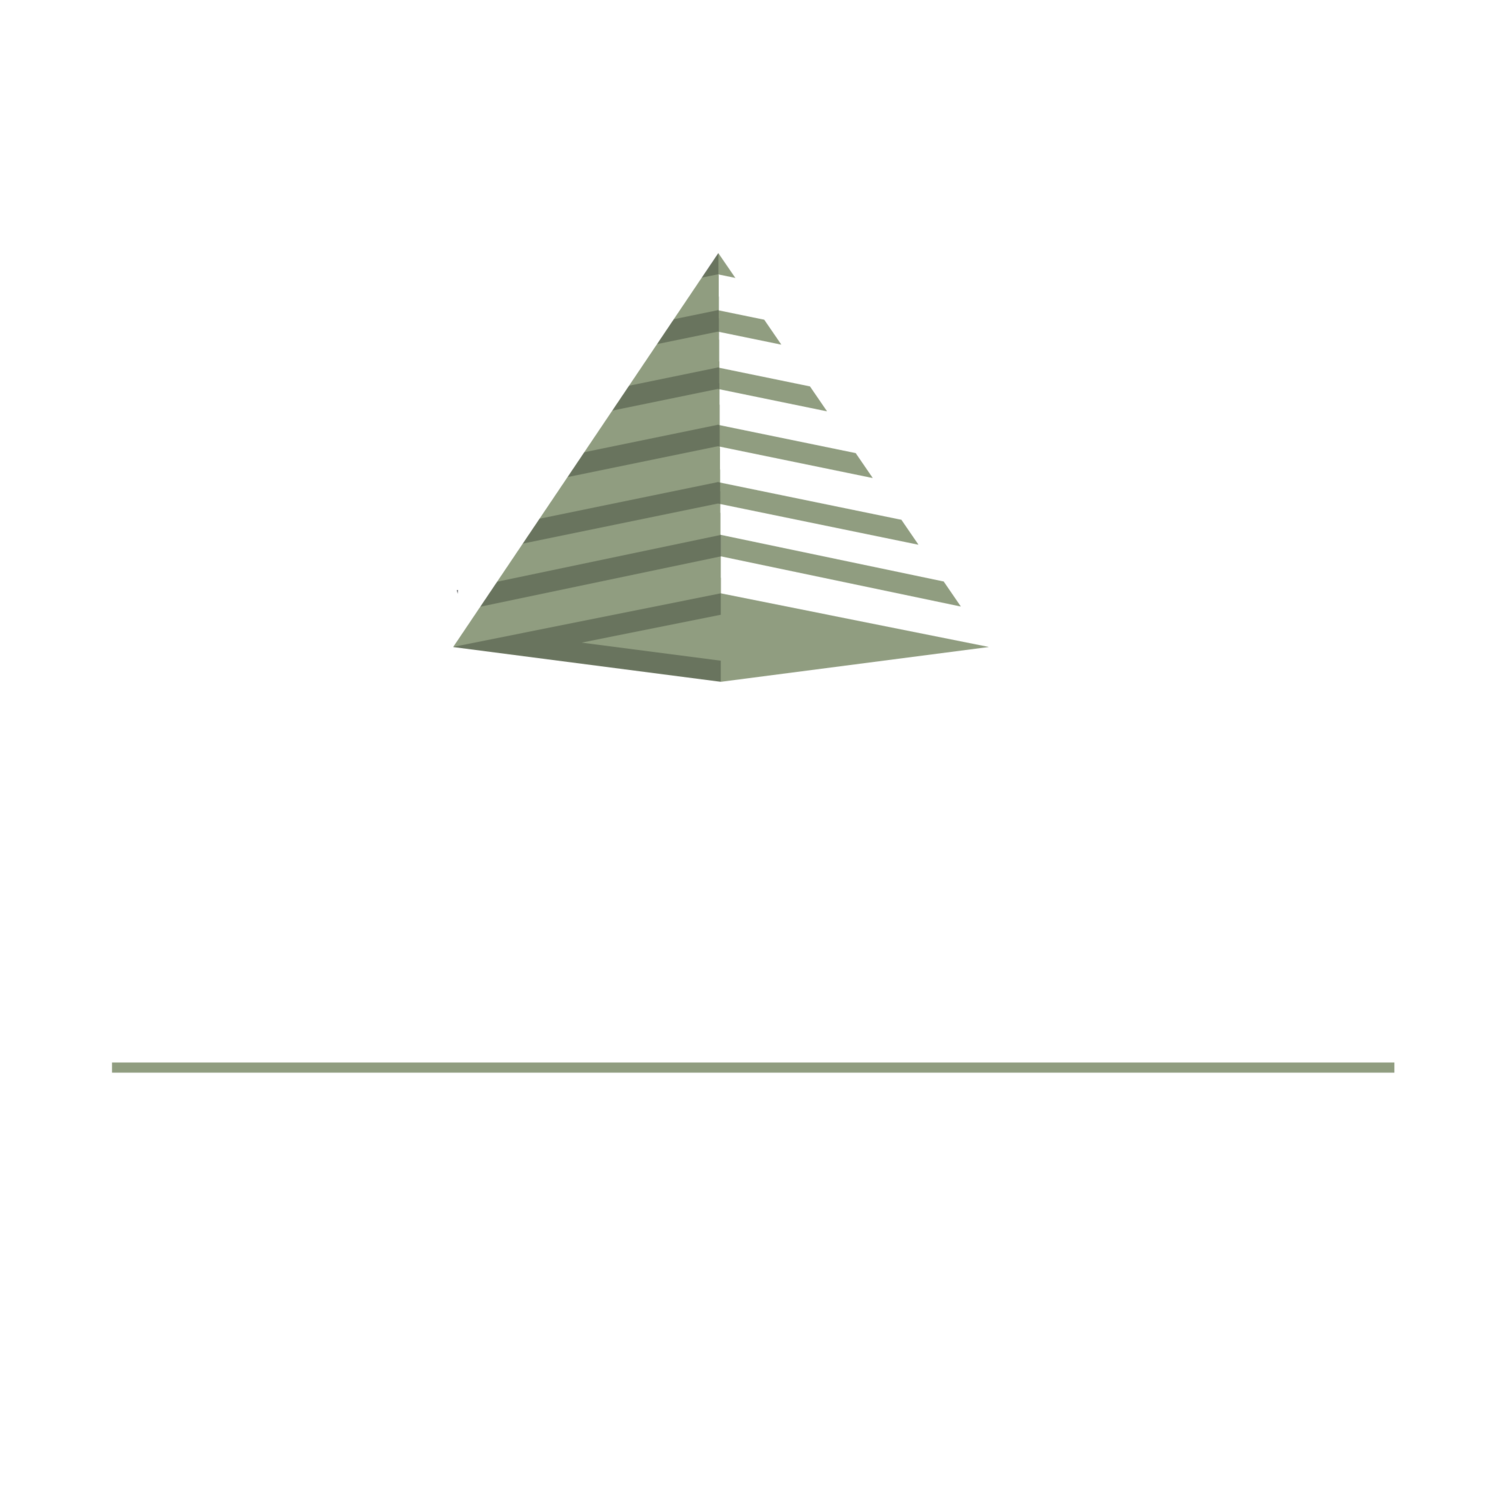 Pyramid logo transparent